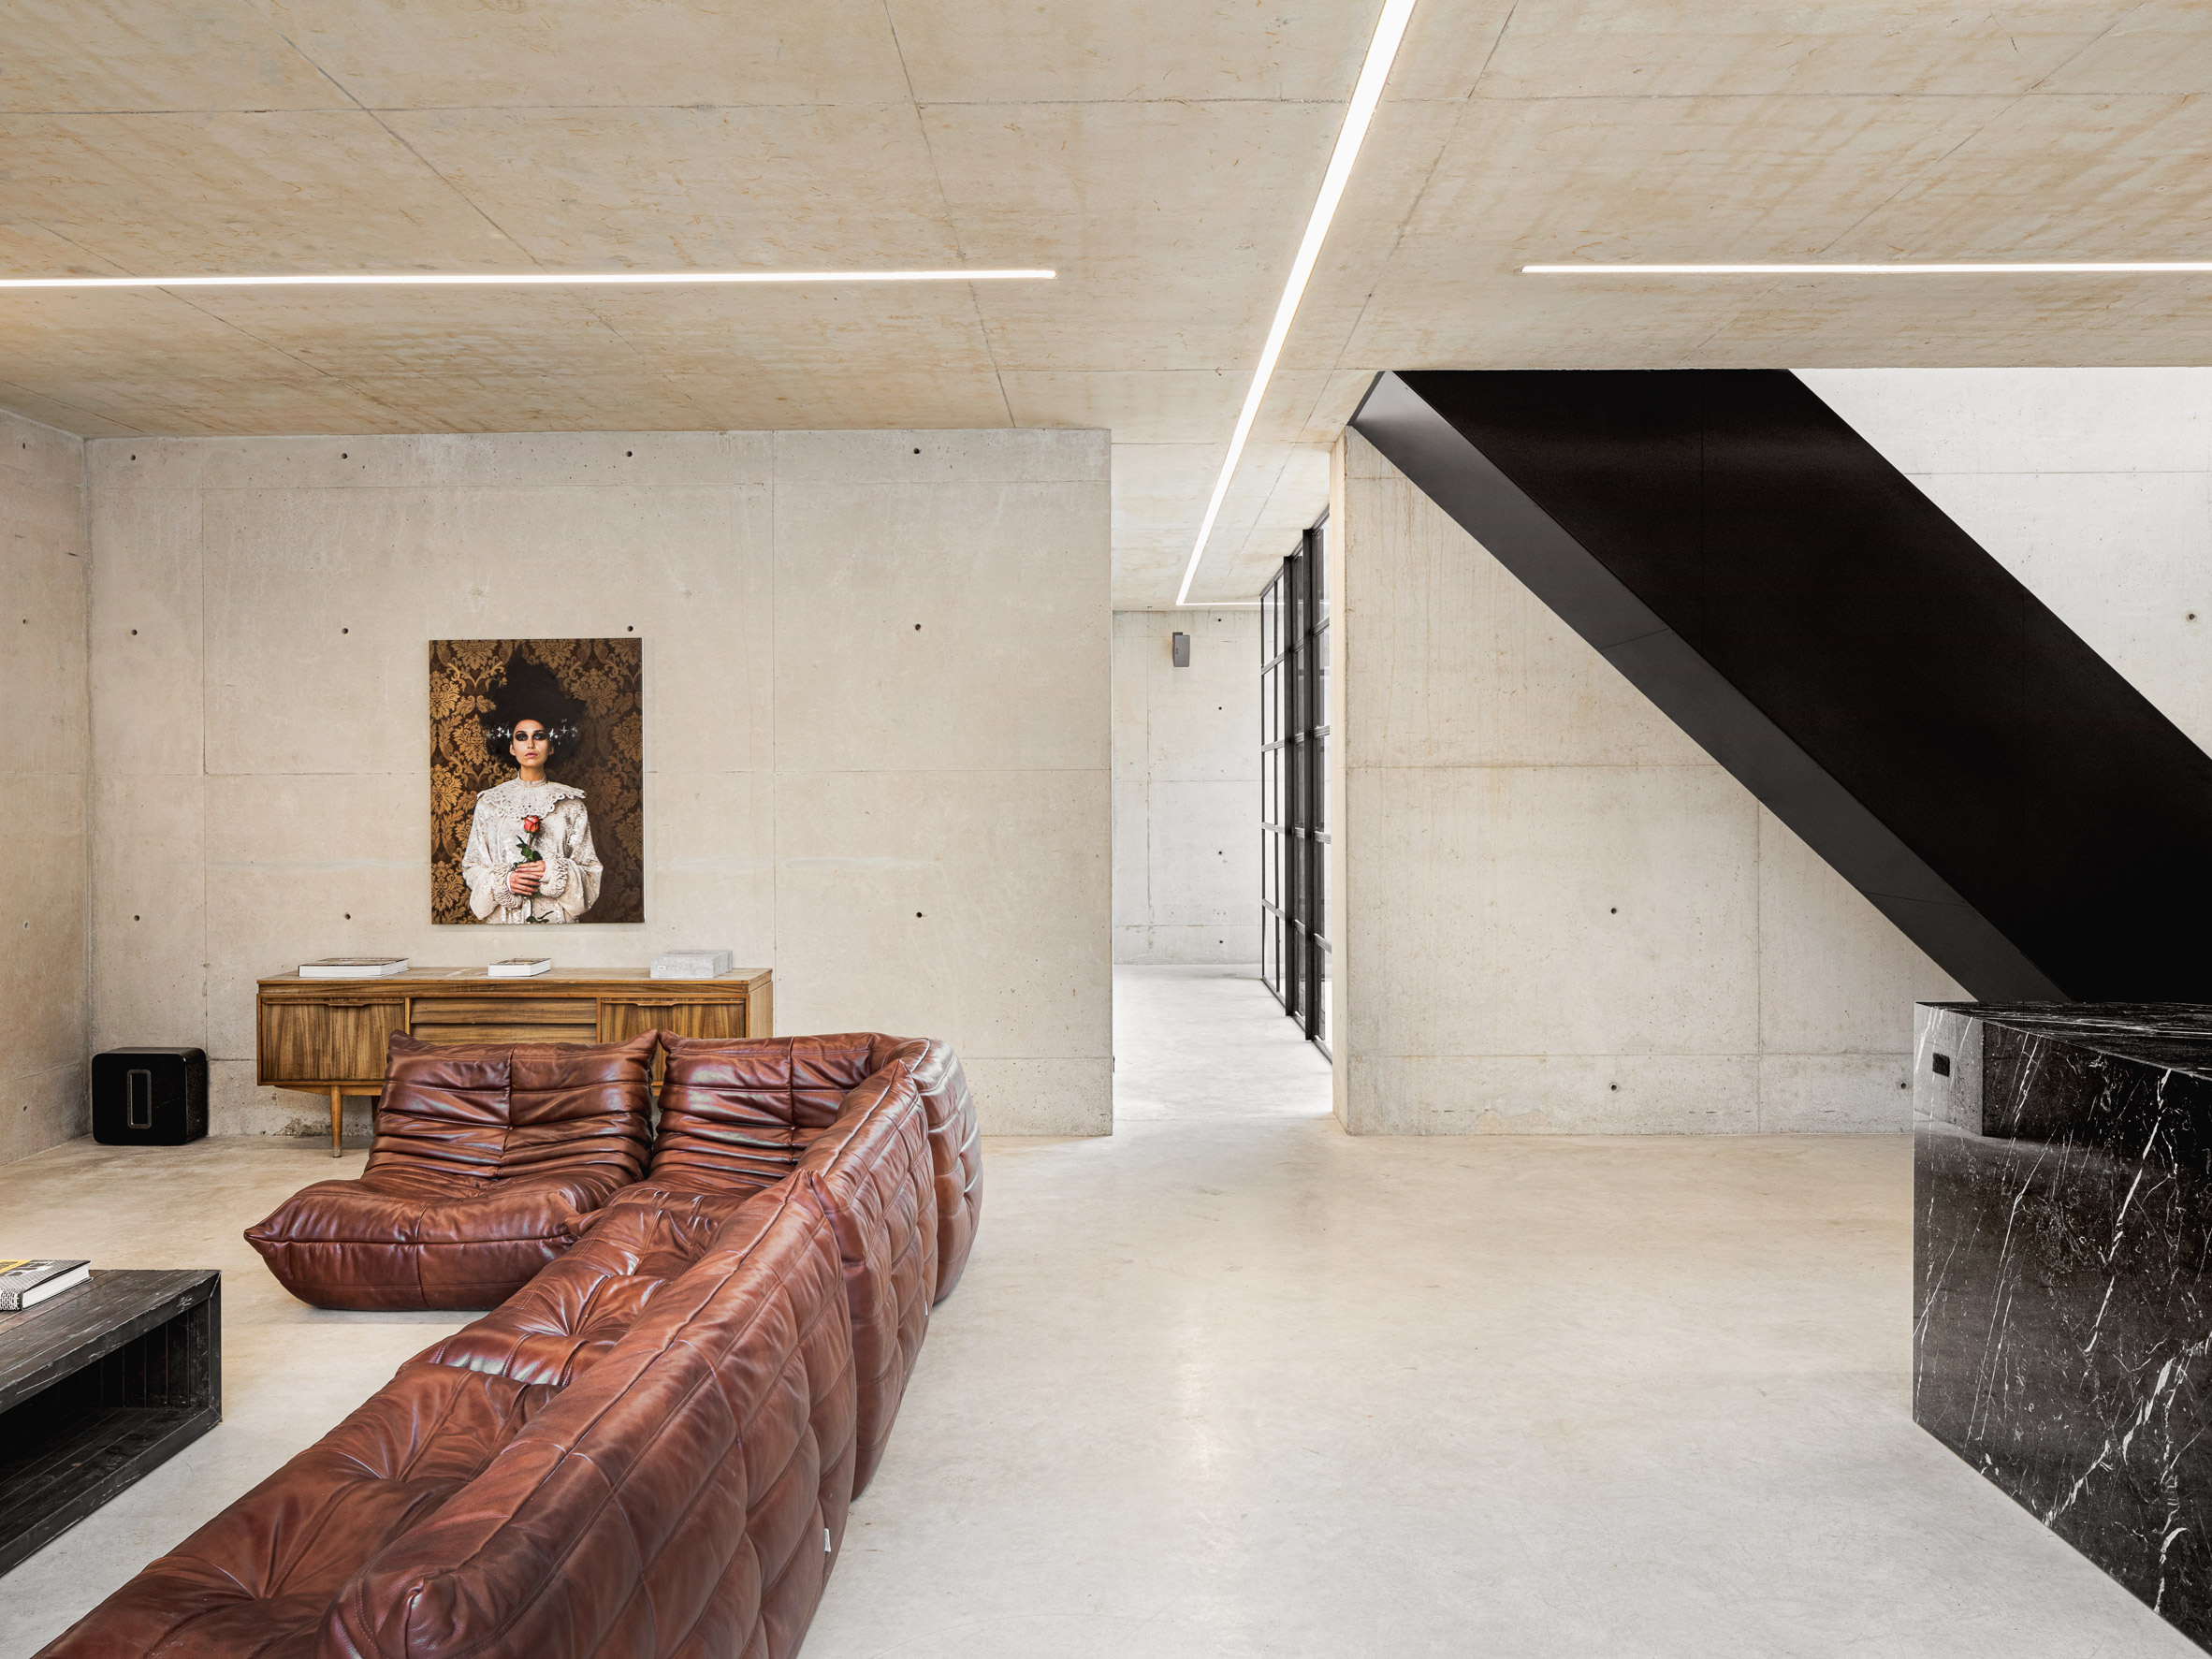 BPN Architects designs Ghost House to have